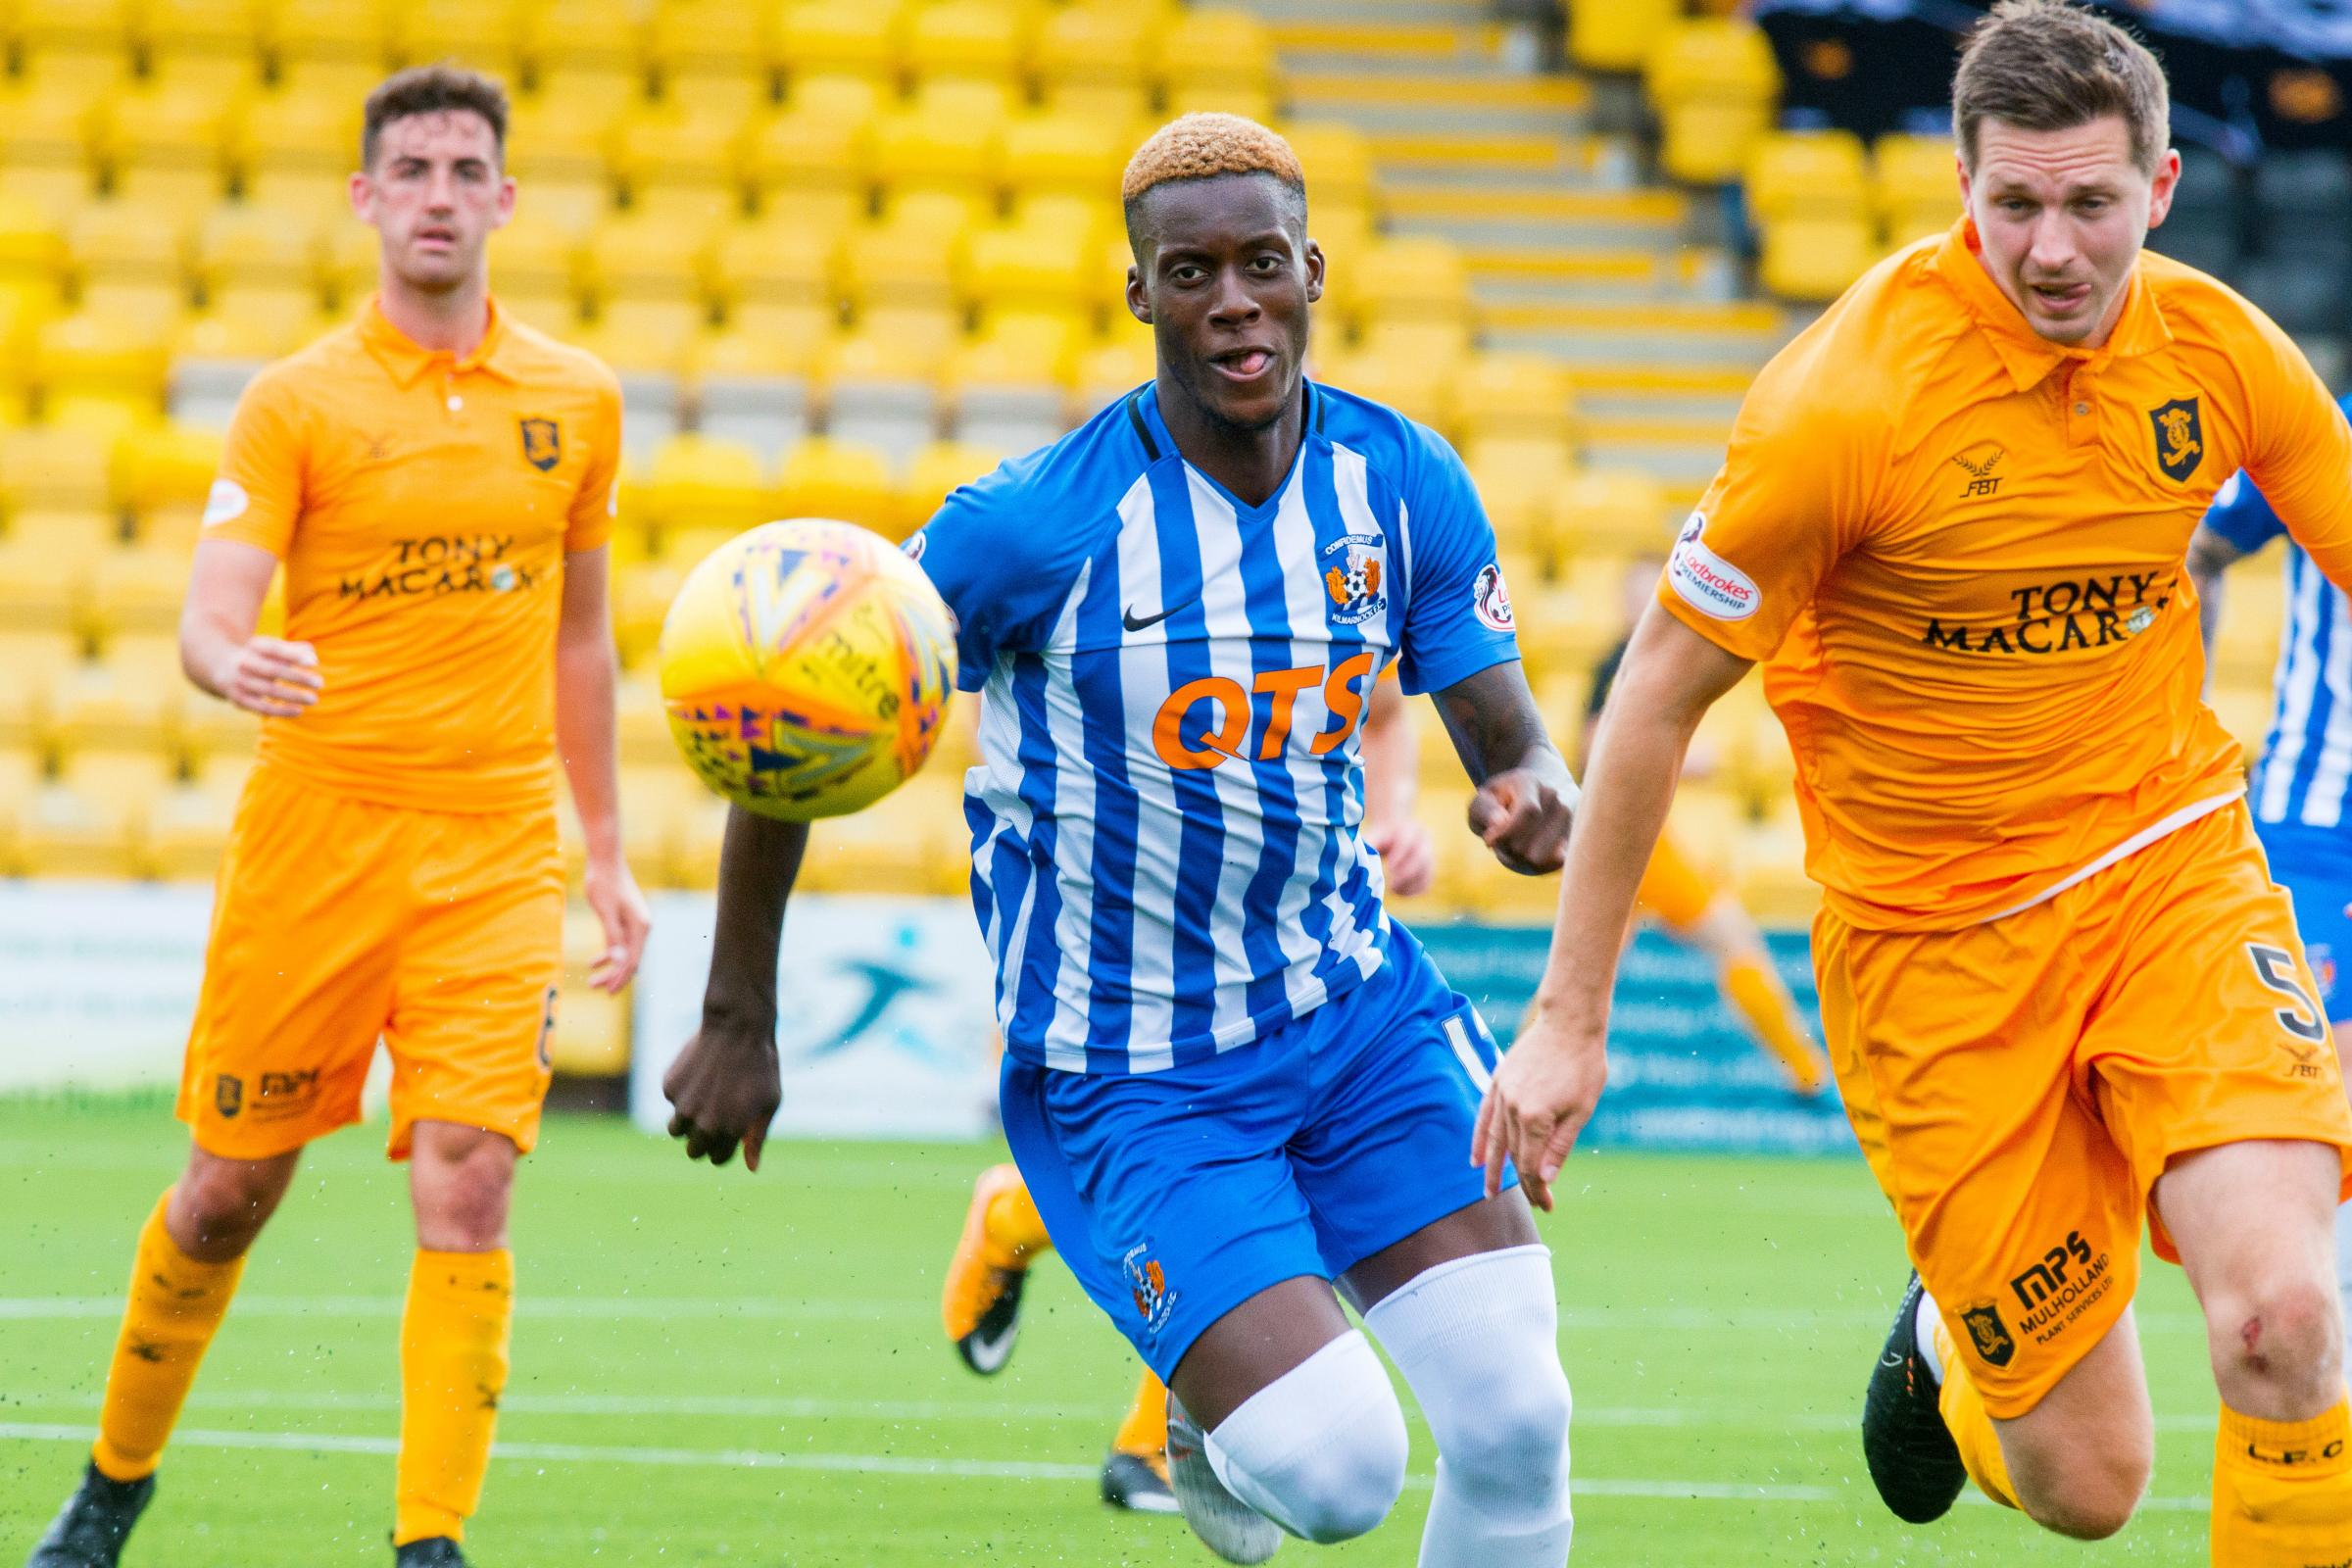 Motherwell complete loan signing of Bournemouth and former Kilmarnock attacker Mikael Ndjoli